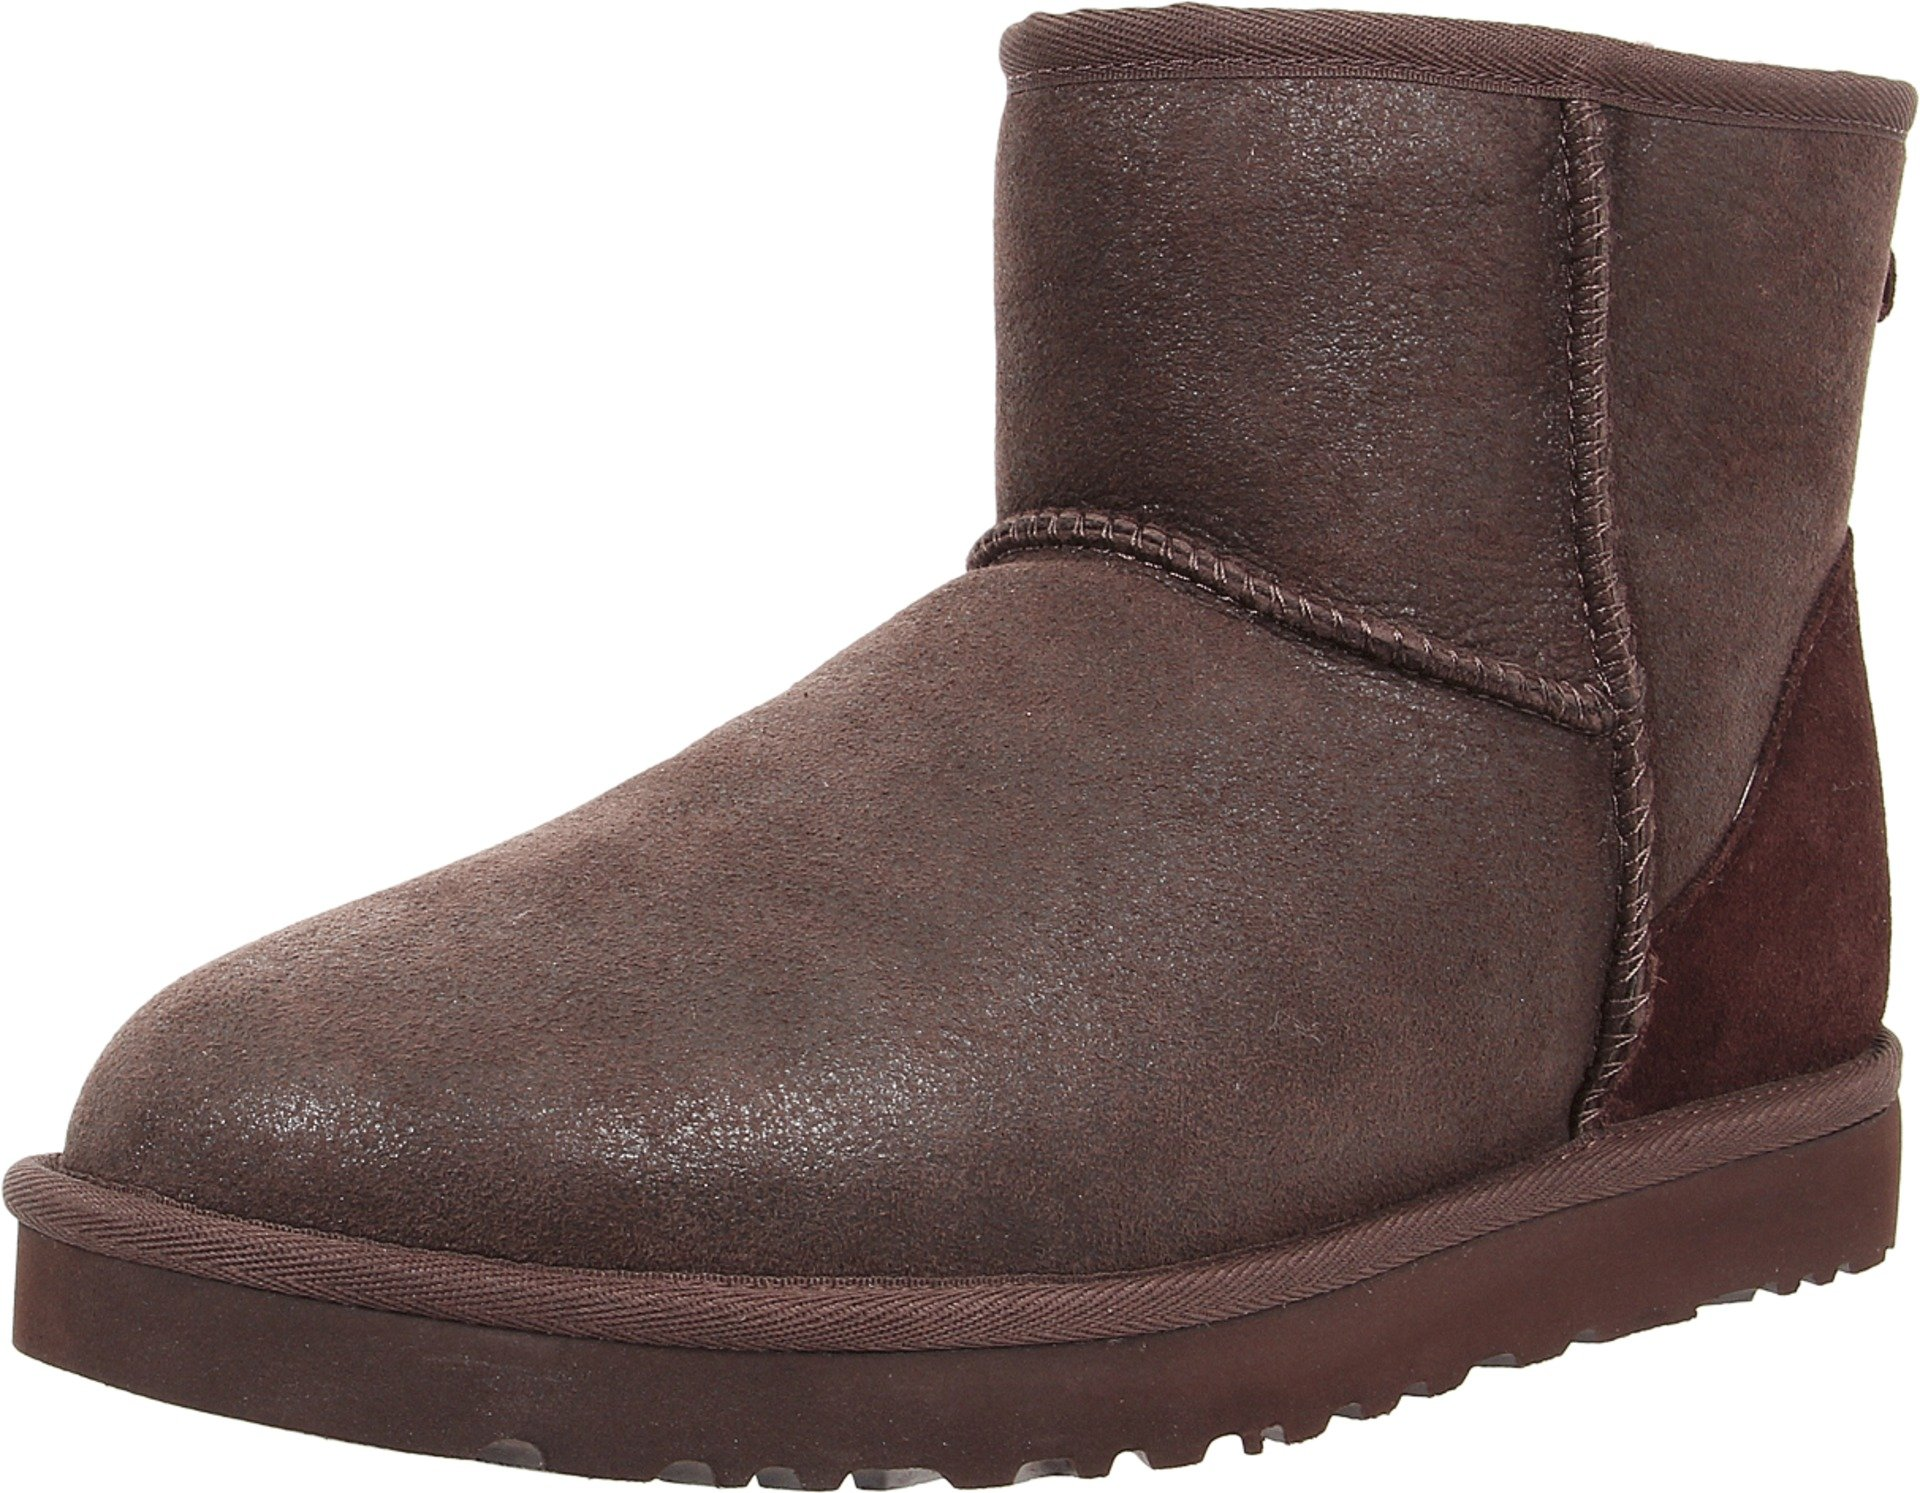 UGG Men's Classic Mini Bomber Bomber Jacket Chocolate Boot 18 D (M)